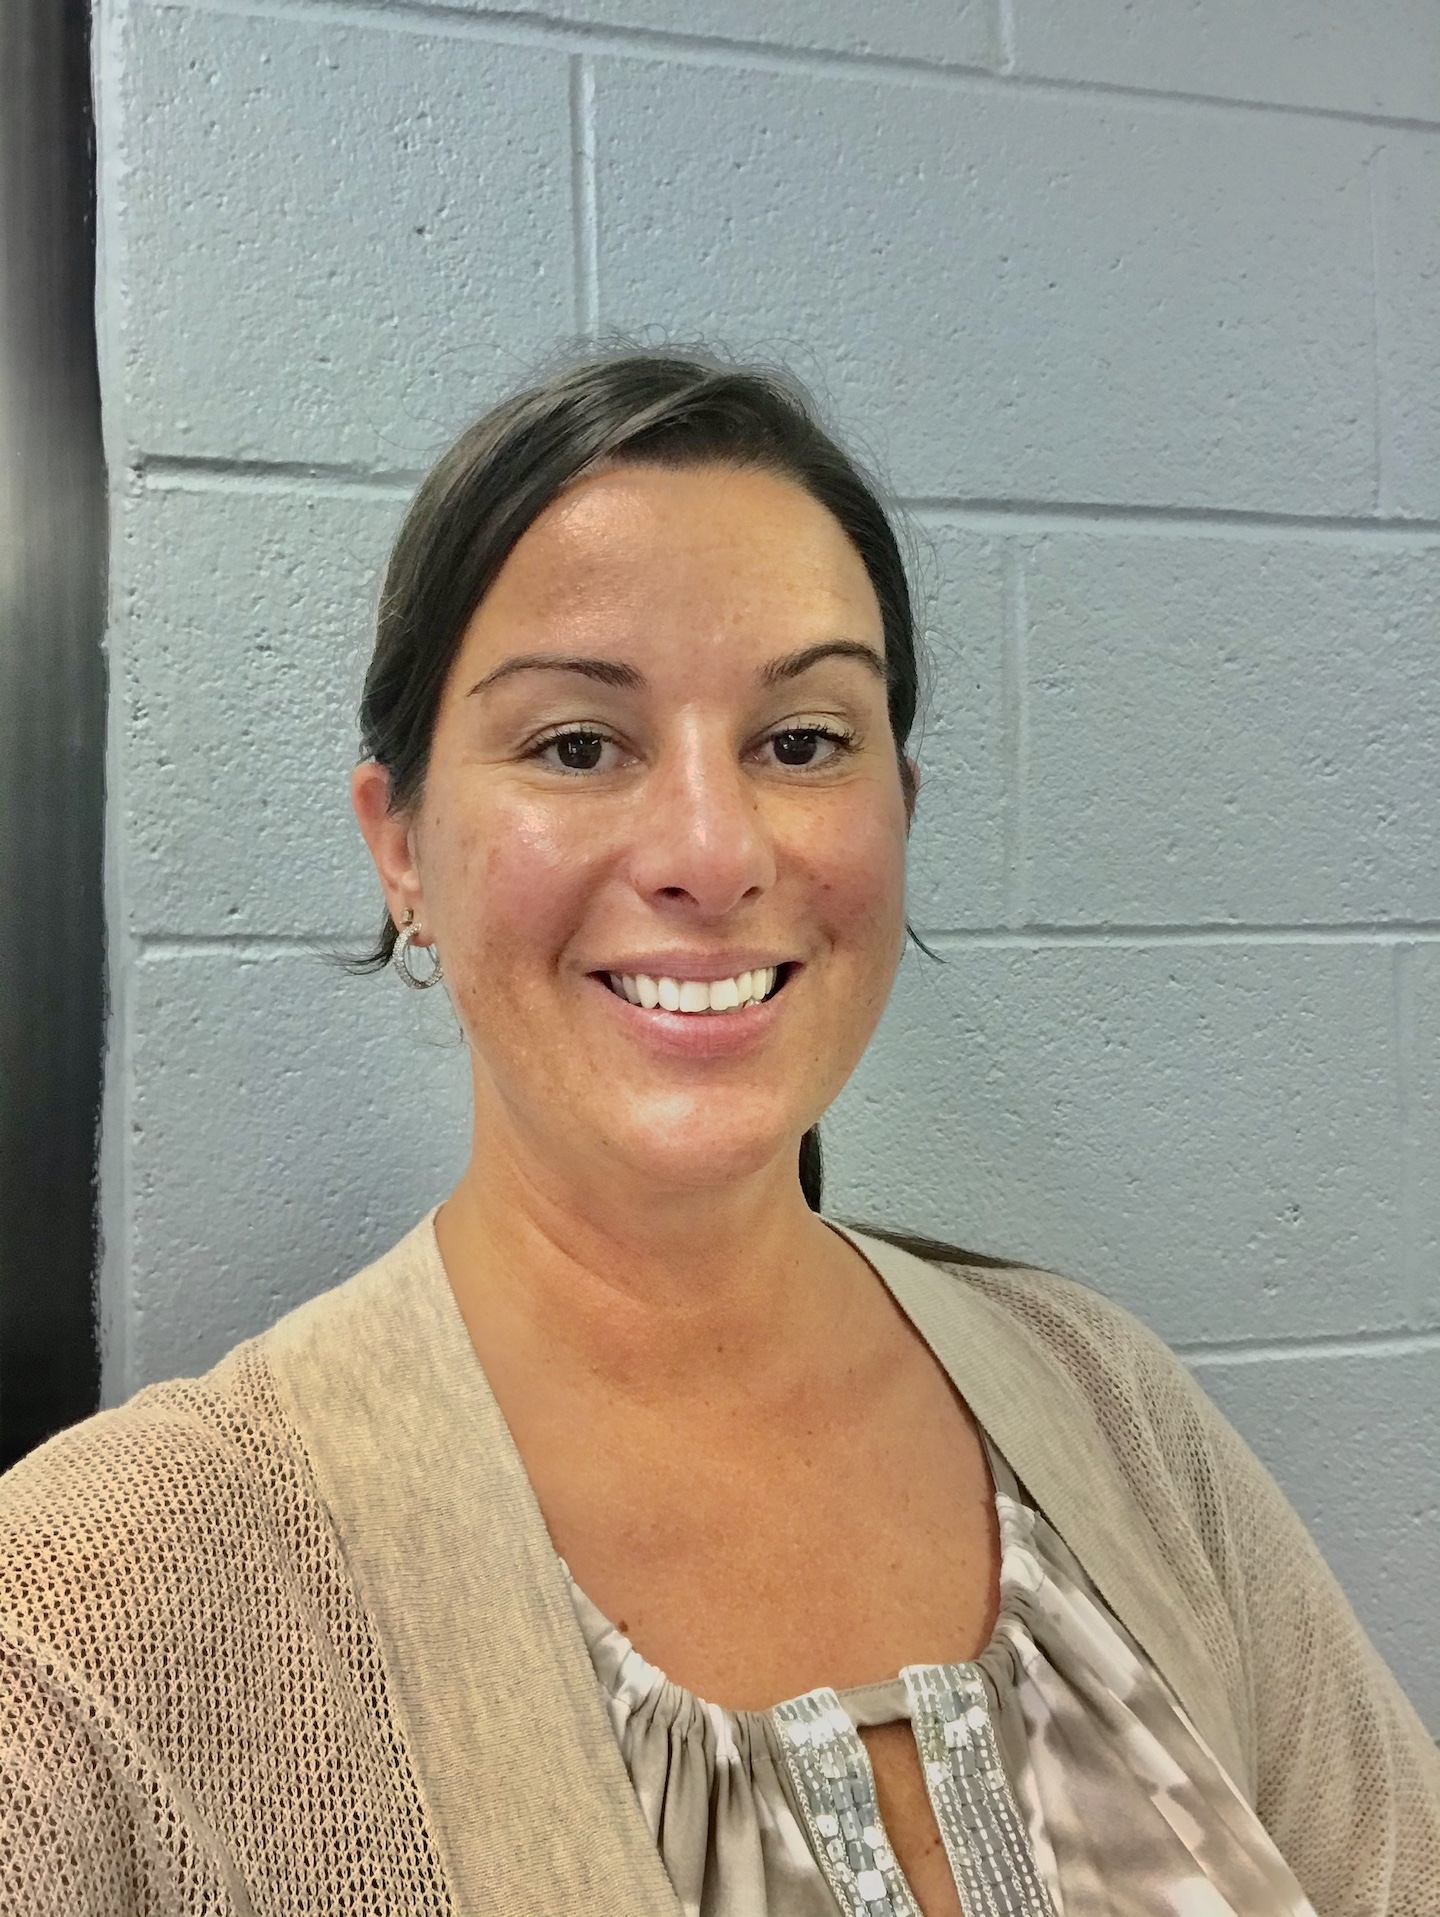 Ms. Liacos, 8th Grade Guidance Counselor